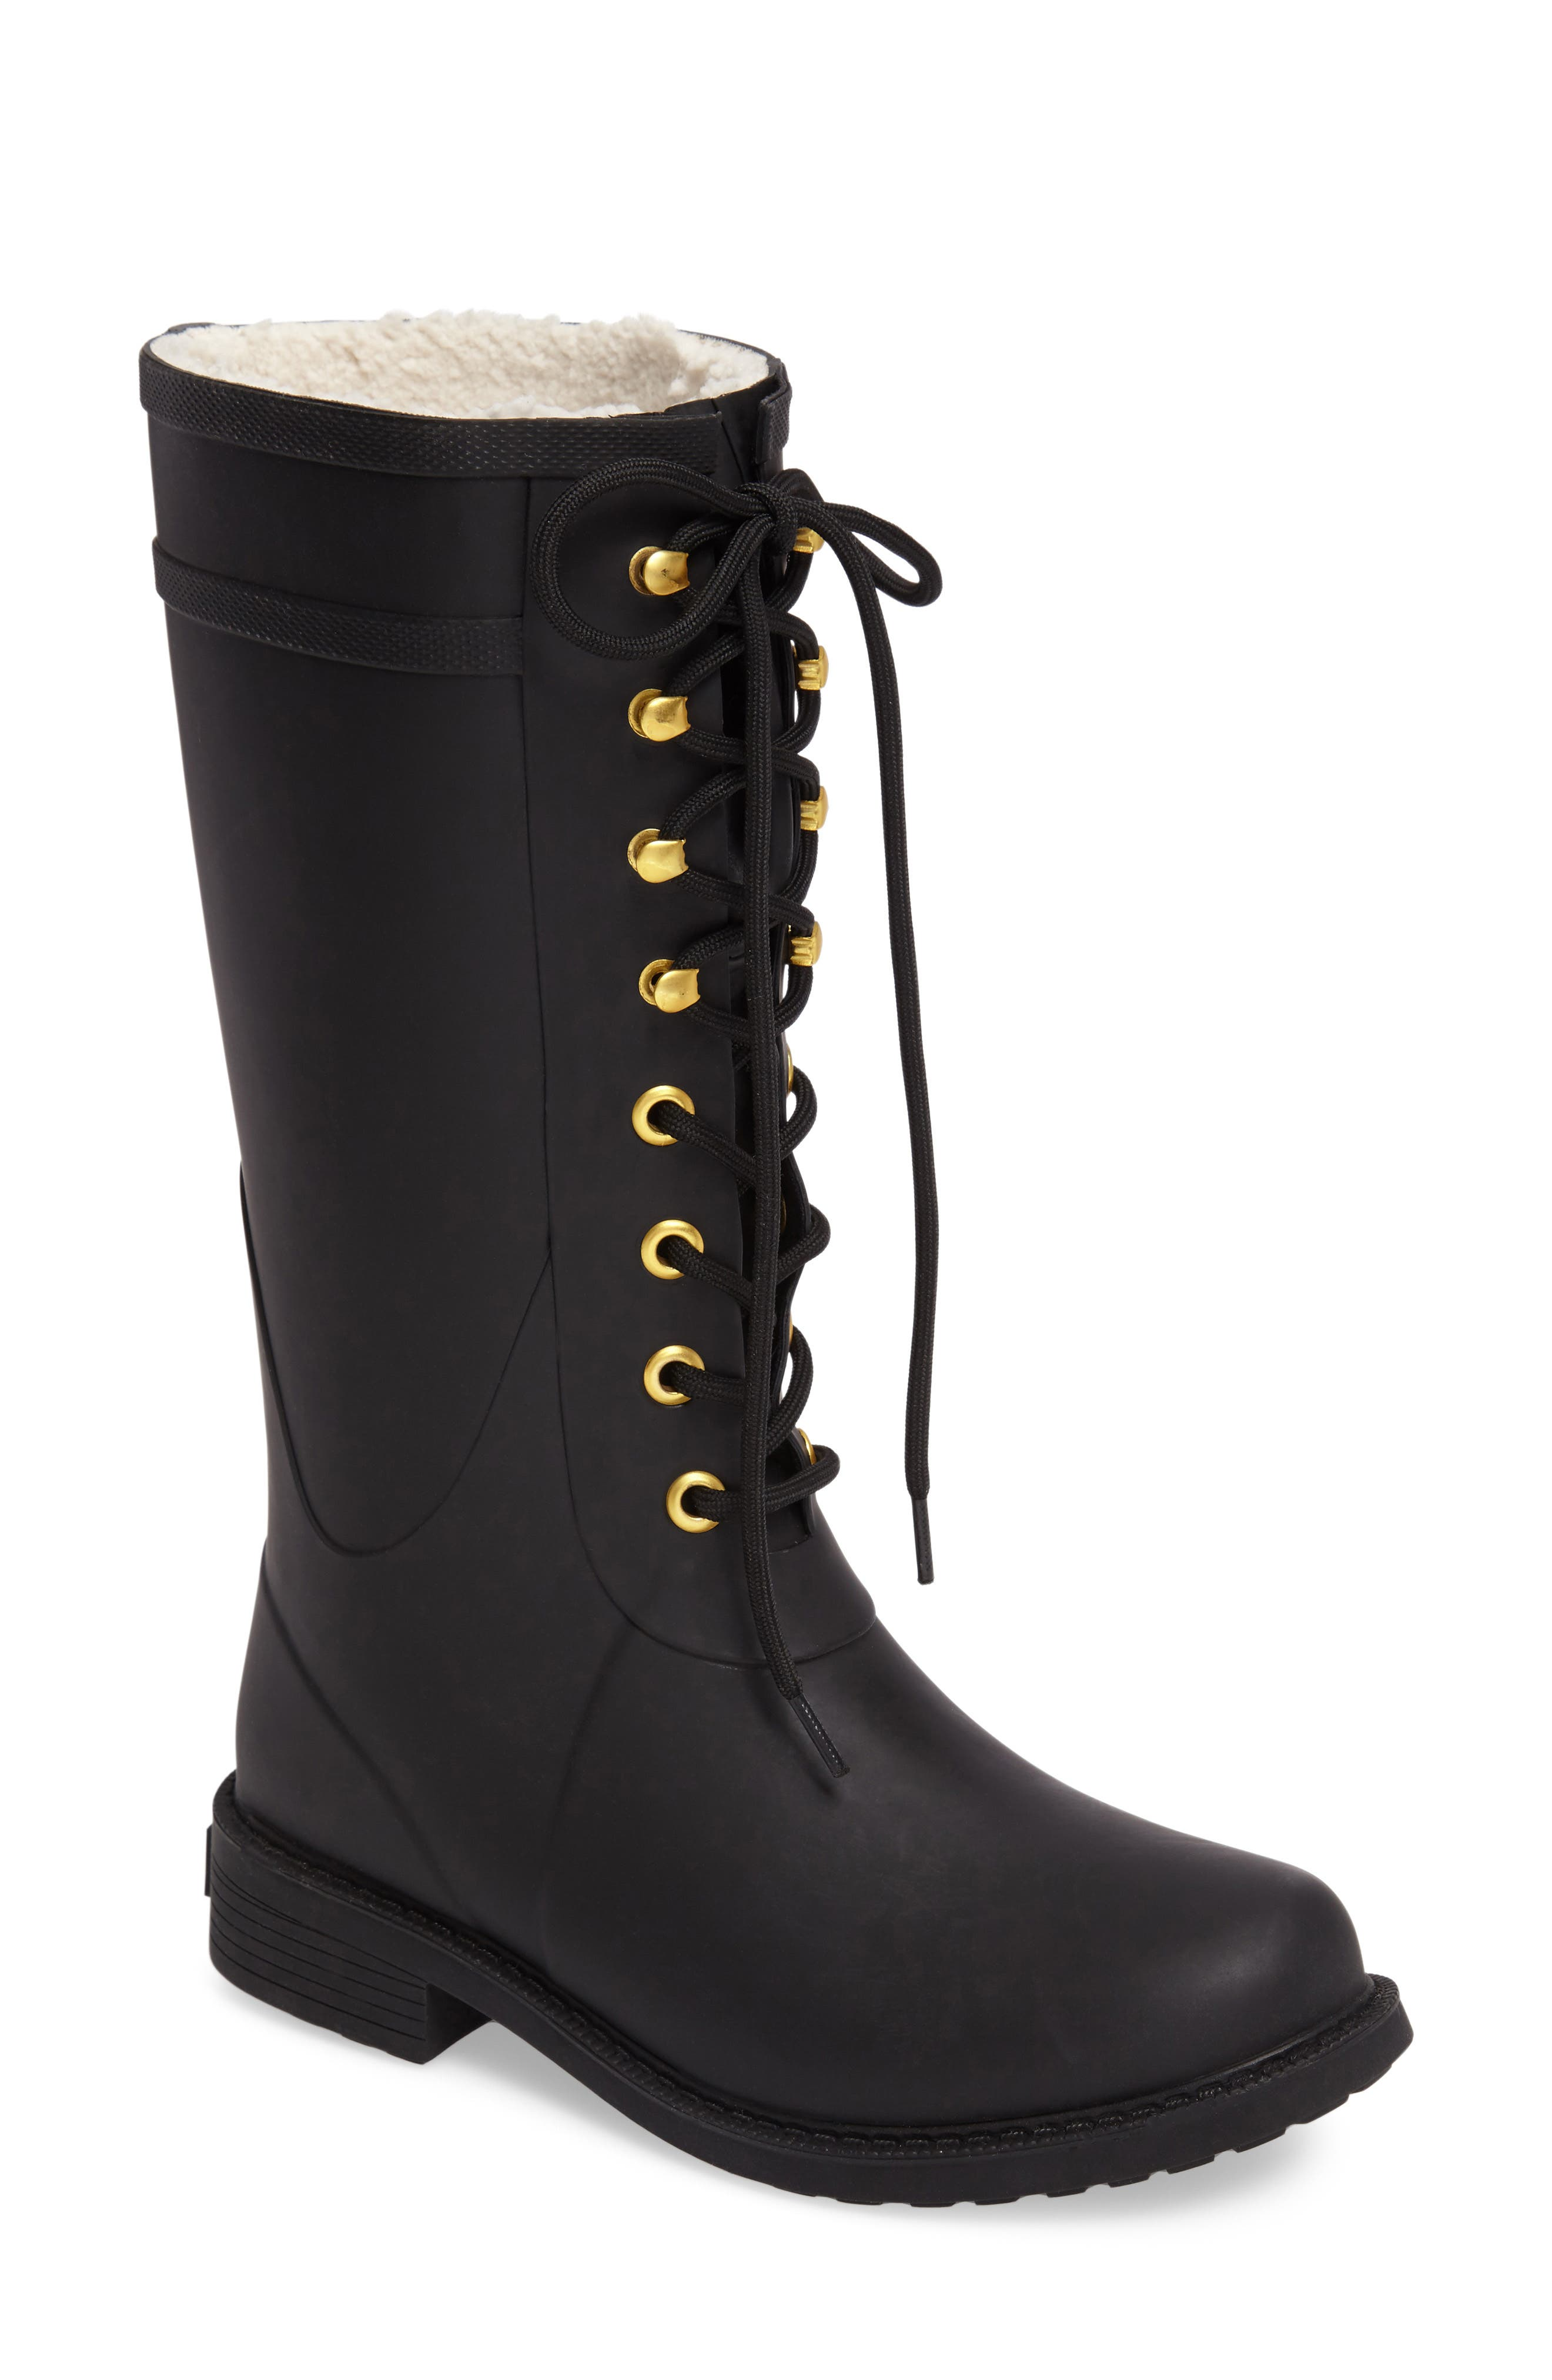 Alternate Image 1 Selected - Sam Edelman Kay Lace-Up Rain Boot (Women)